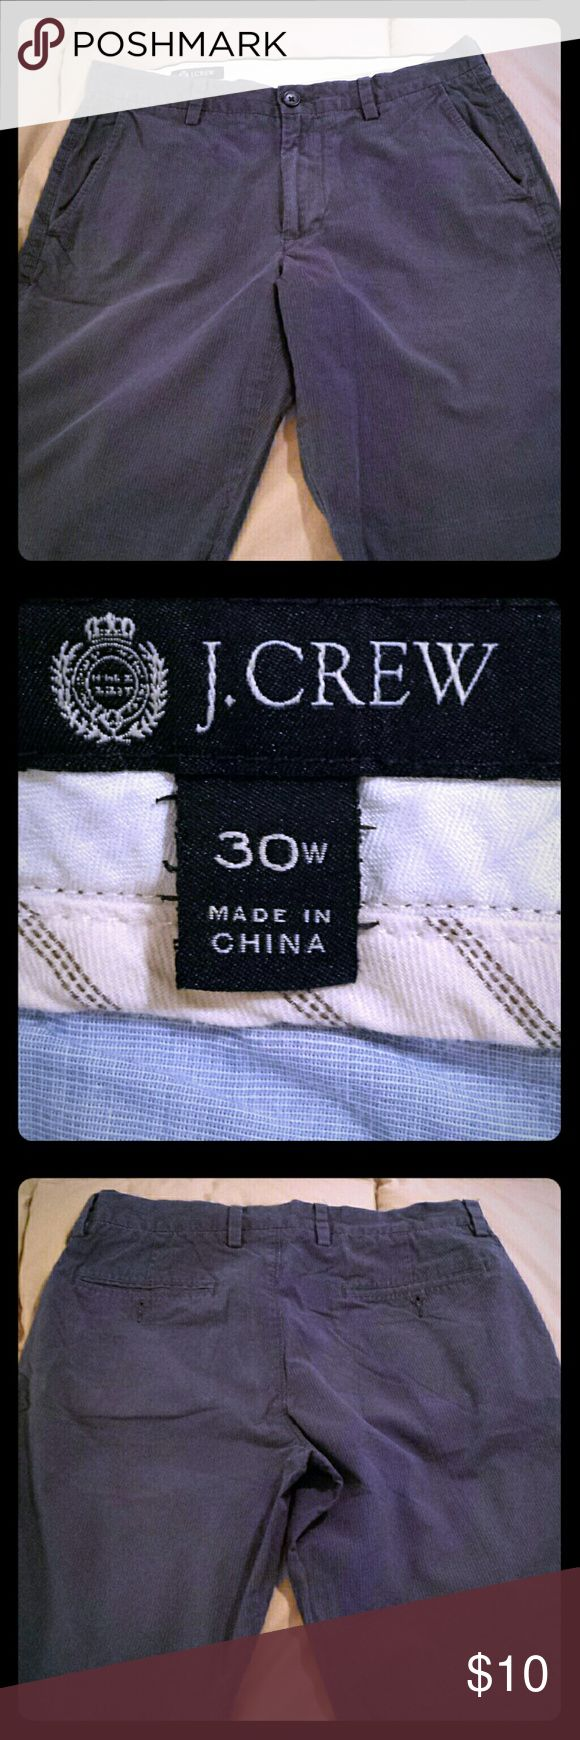 Mens j.crew shorts,size 30, grey pinstripe 10 inch Good condition J. Crew Shorts Flat Front